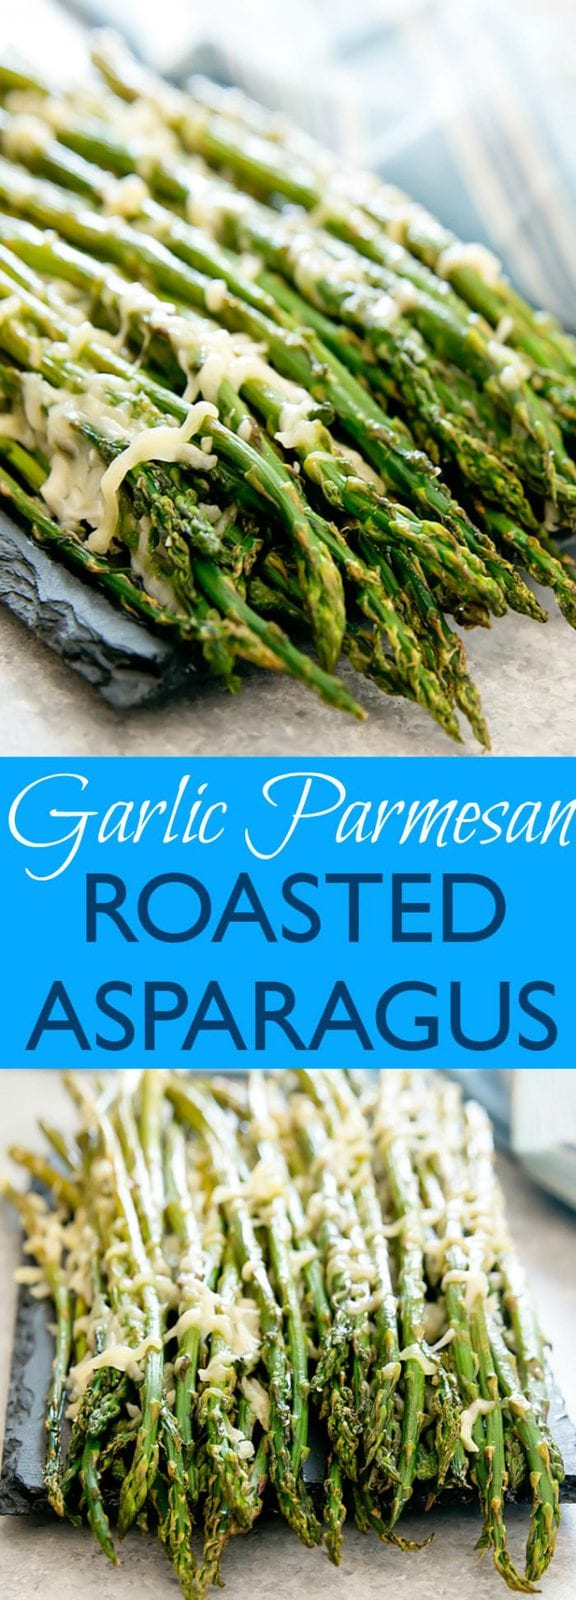 Easy Garlic Parmesan Roasted Asparagus